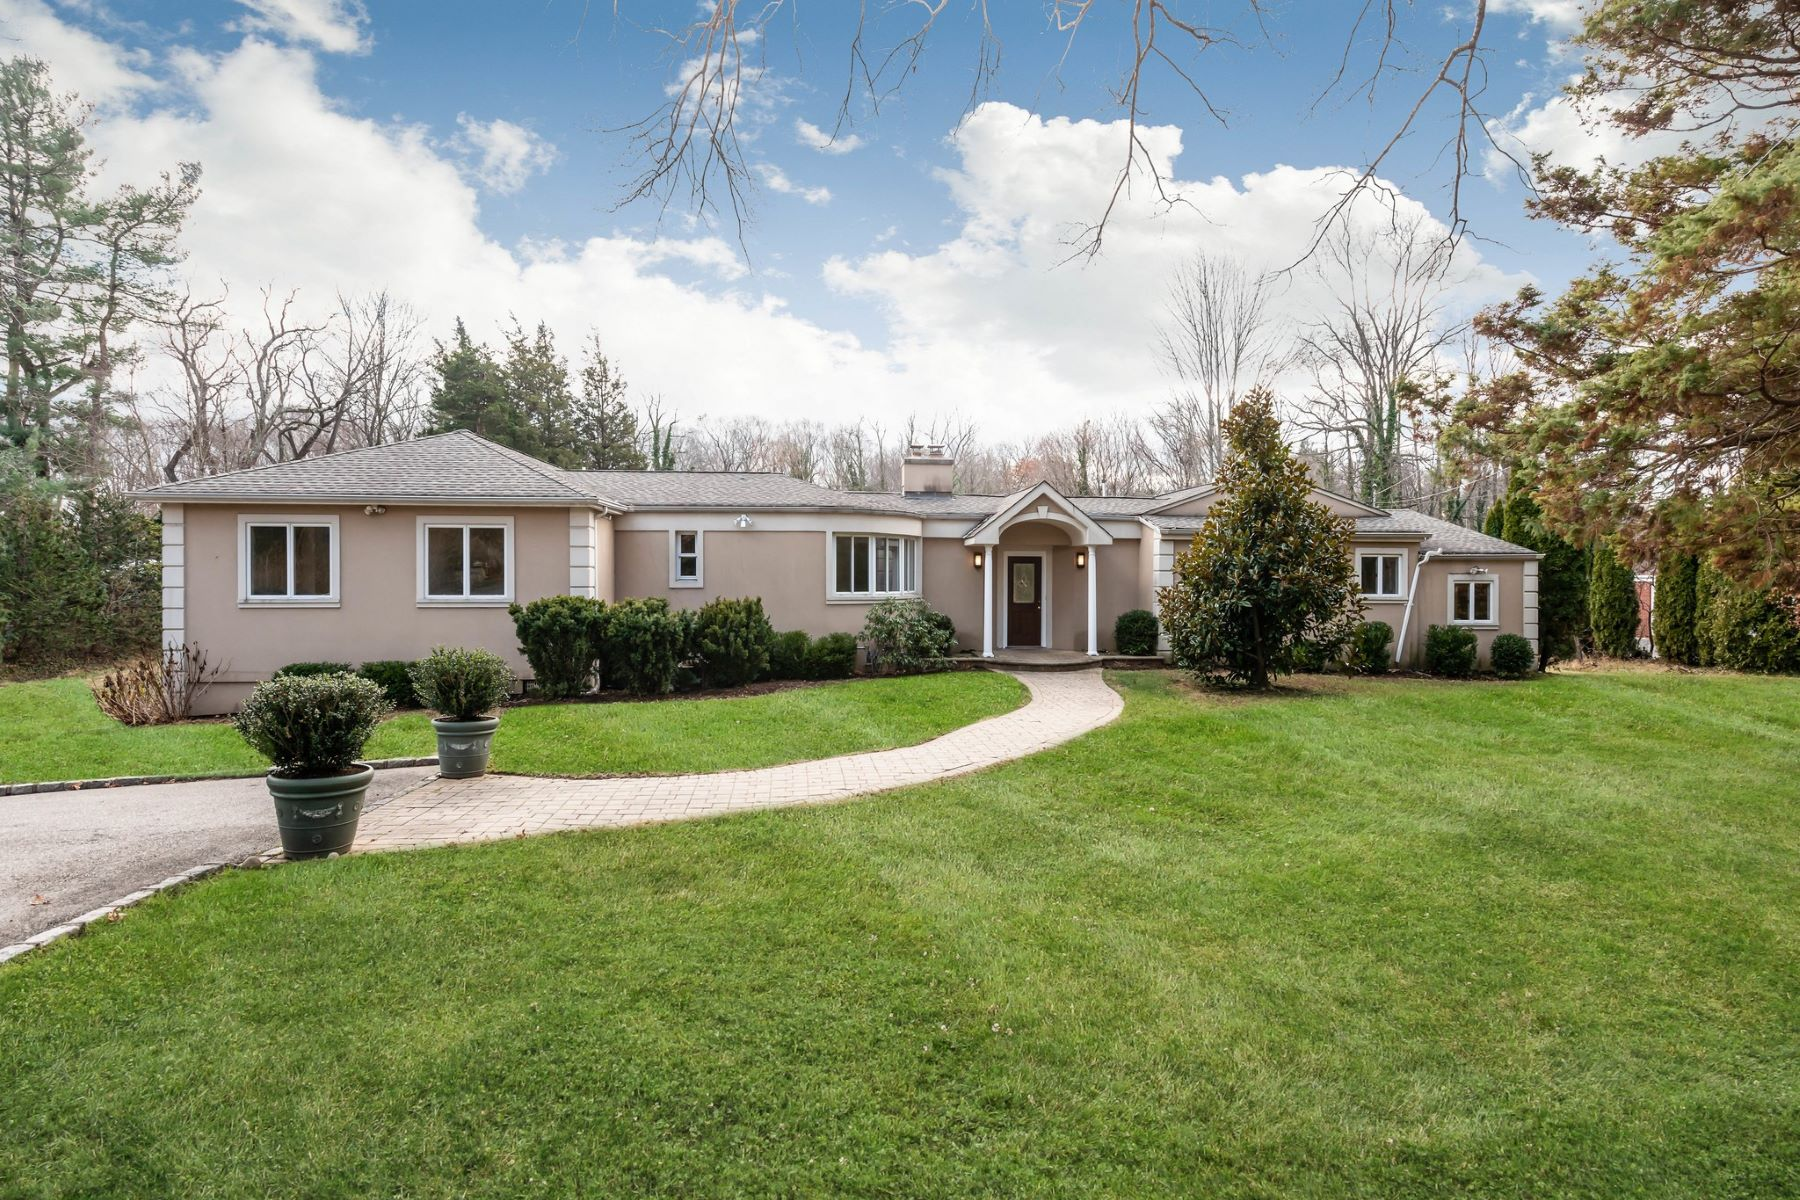 Single Family Homes for Active at Cold Spring Hrbr 82 Huntington Rd Cold Spring Harbor, New York 11724 United States